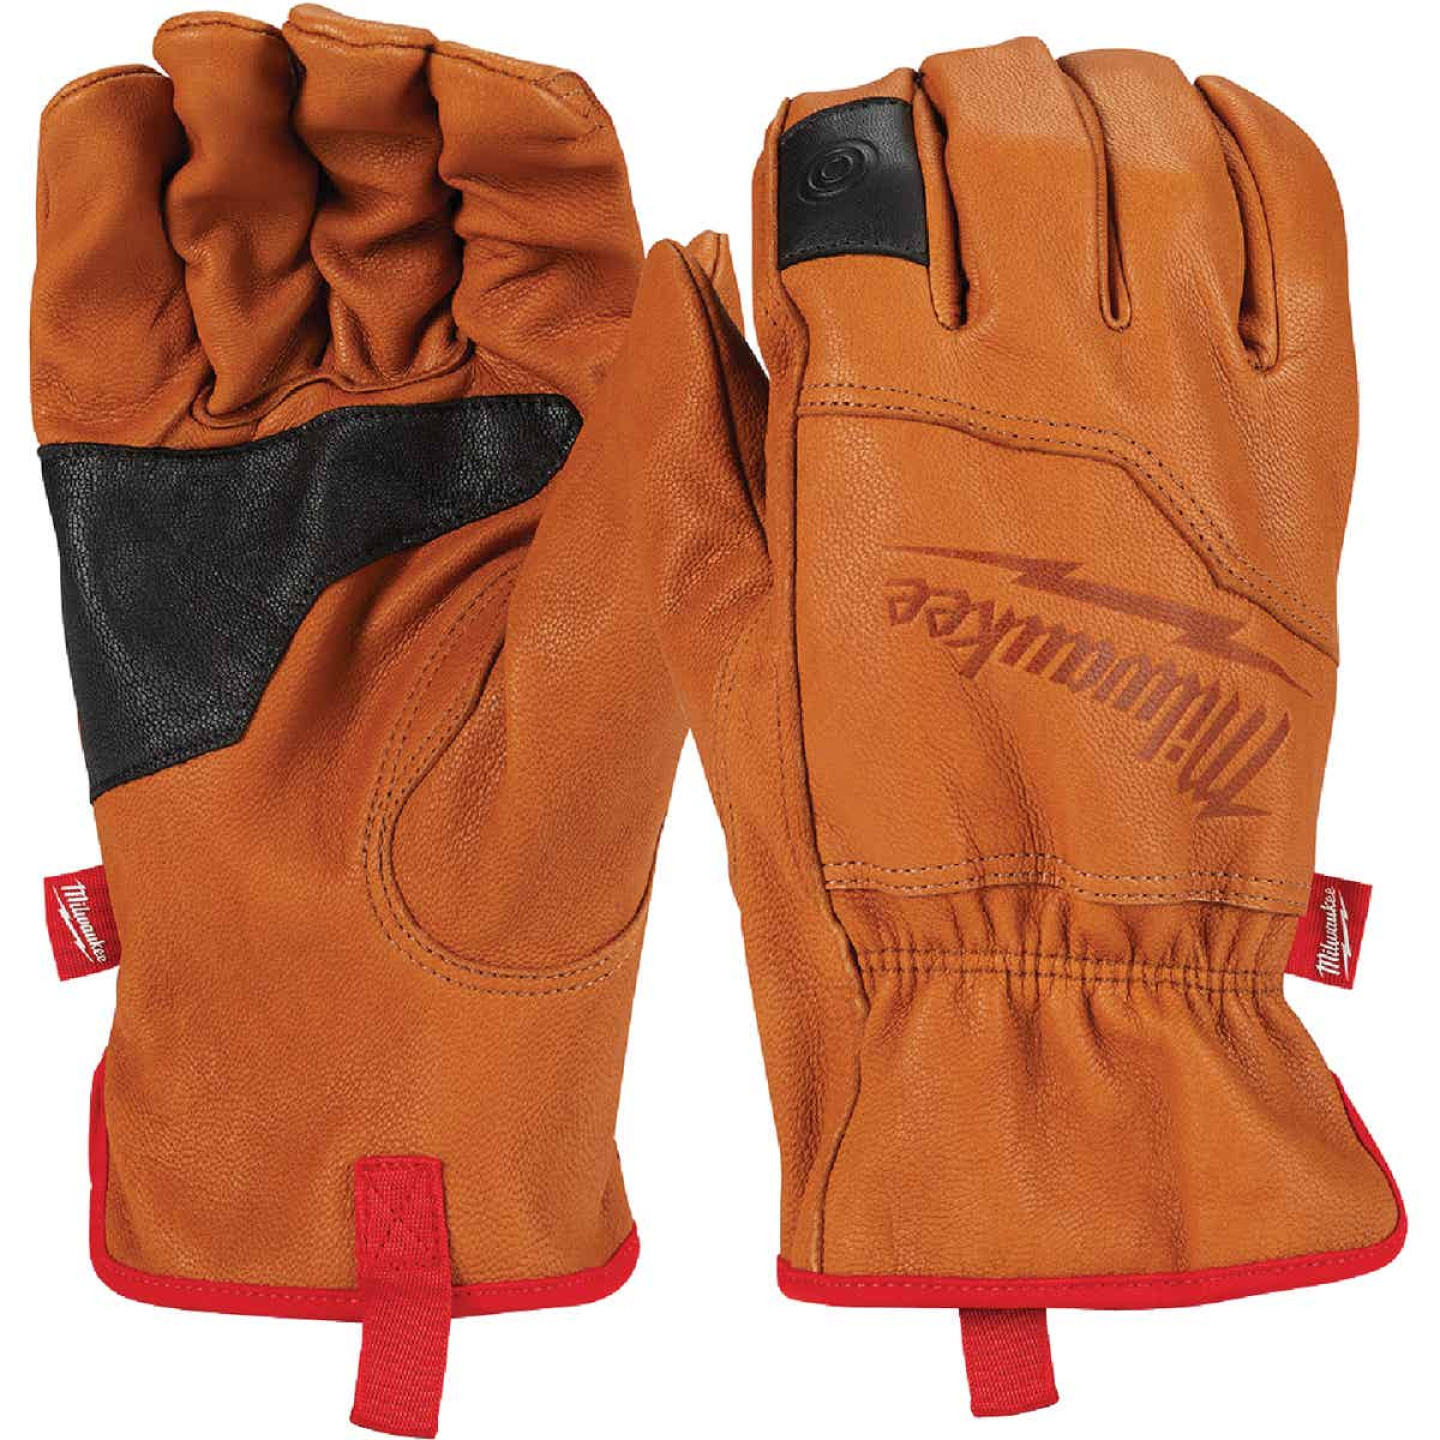 Milwaukee Men's Large Goatskin Leather Work Gloves Image 1